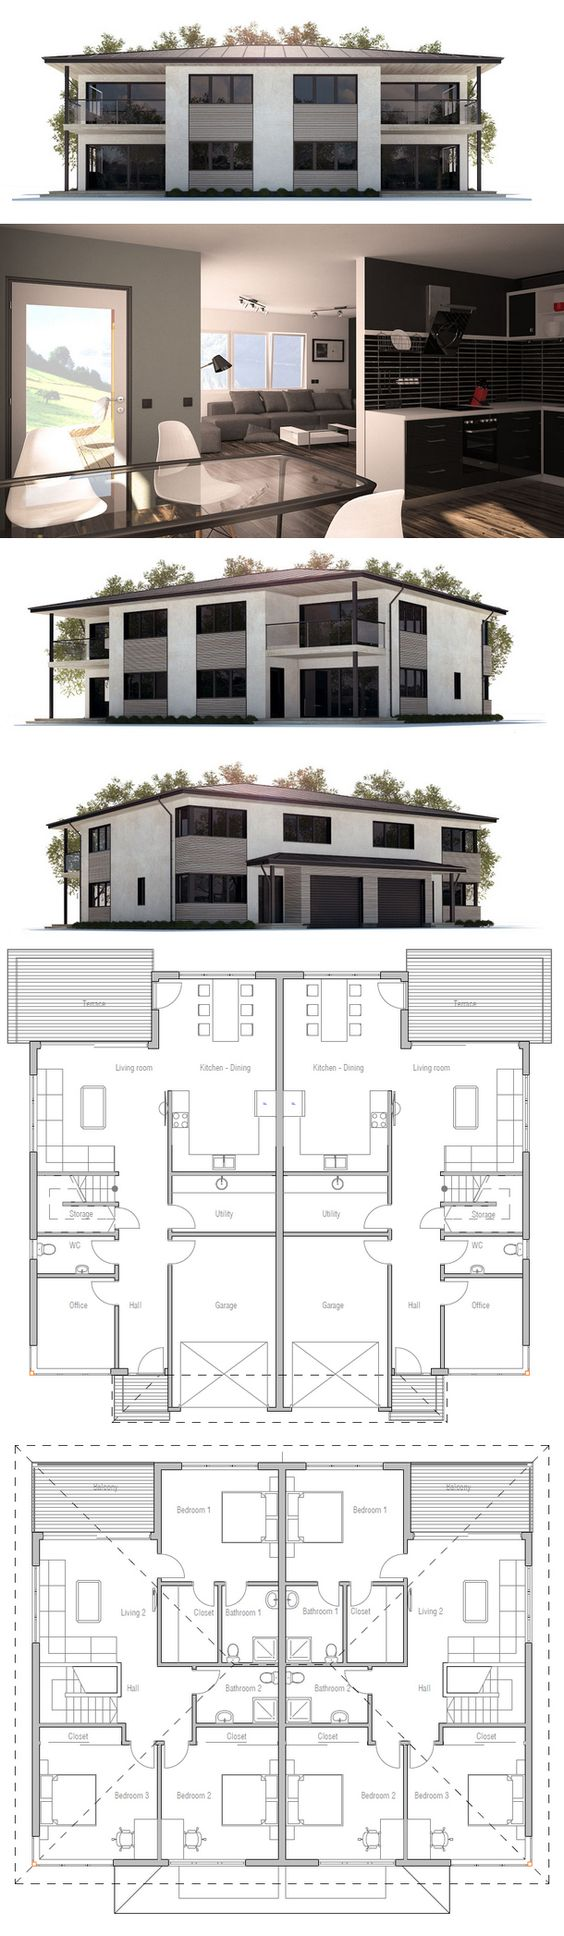 Plan de maison duplex plans de maisons pinterest for Maison duplex plan